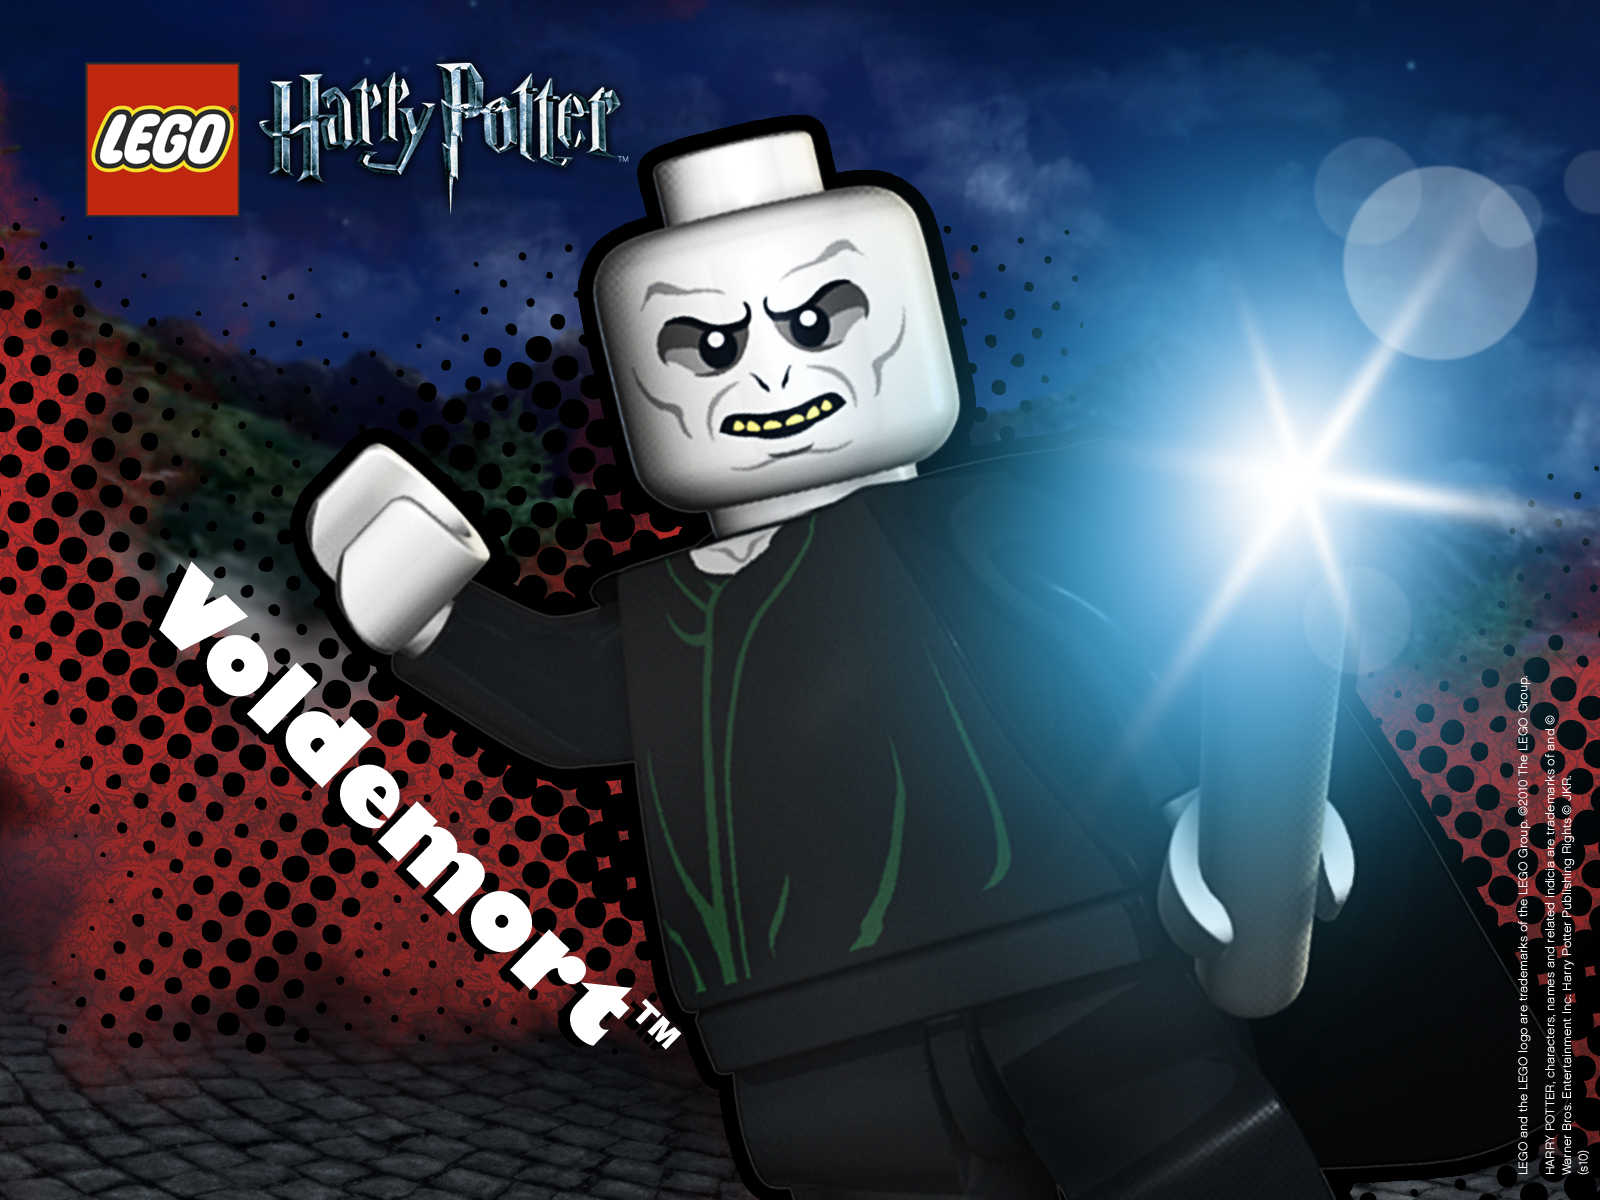 image - lord voldemort wallpaper | brickipedia | fandom powered